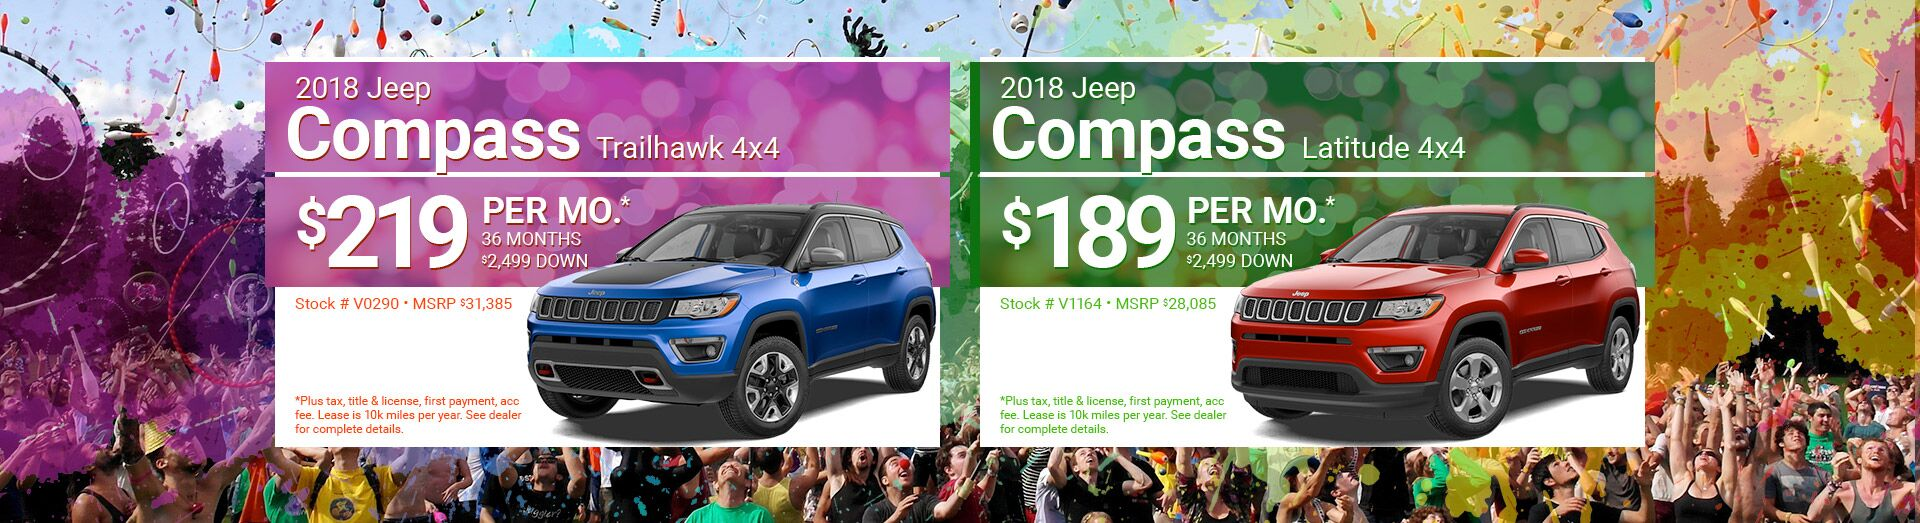 June Lease Jeep Compass